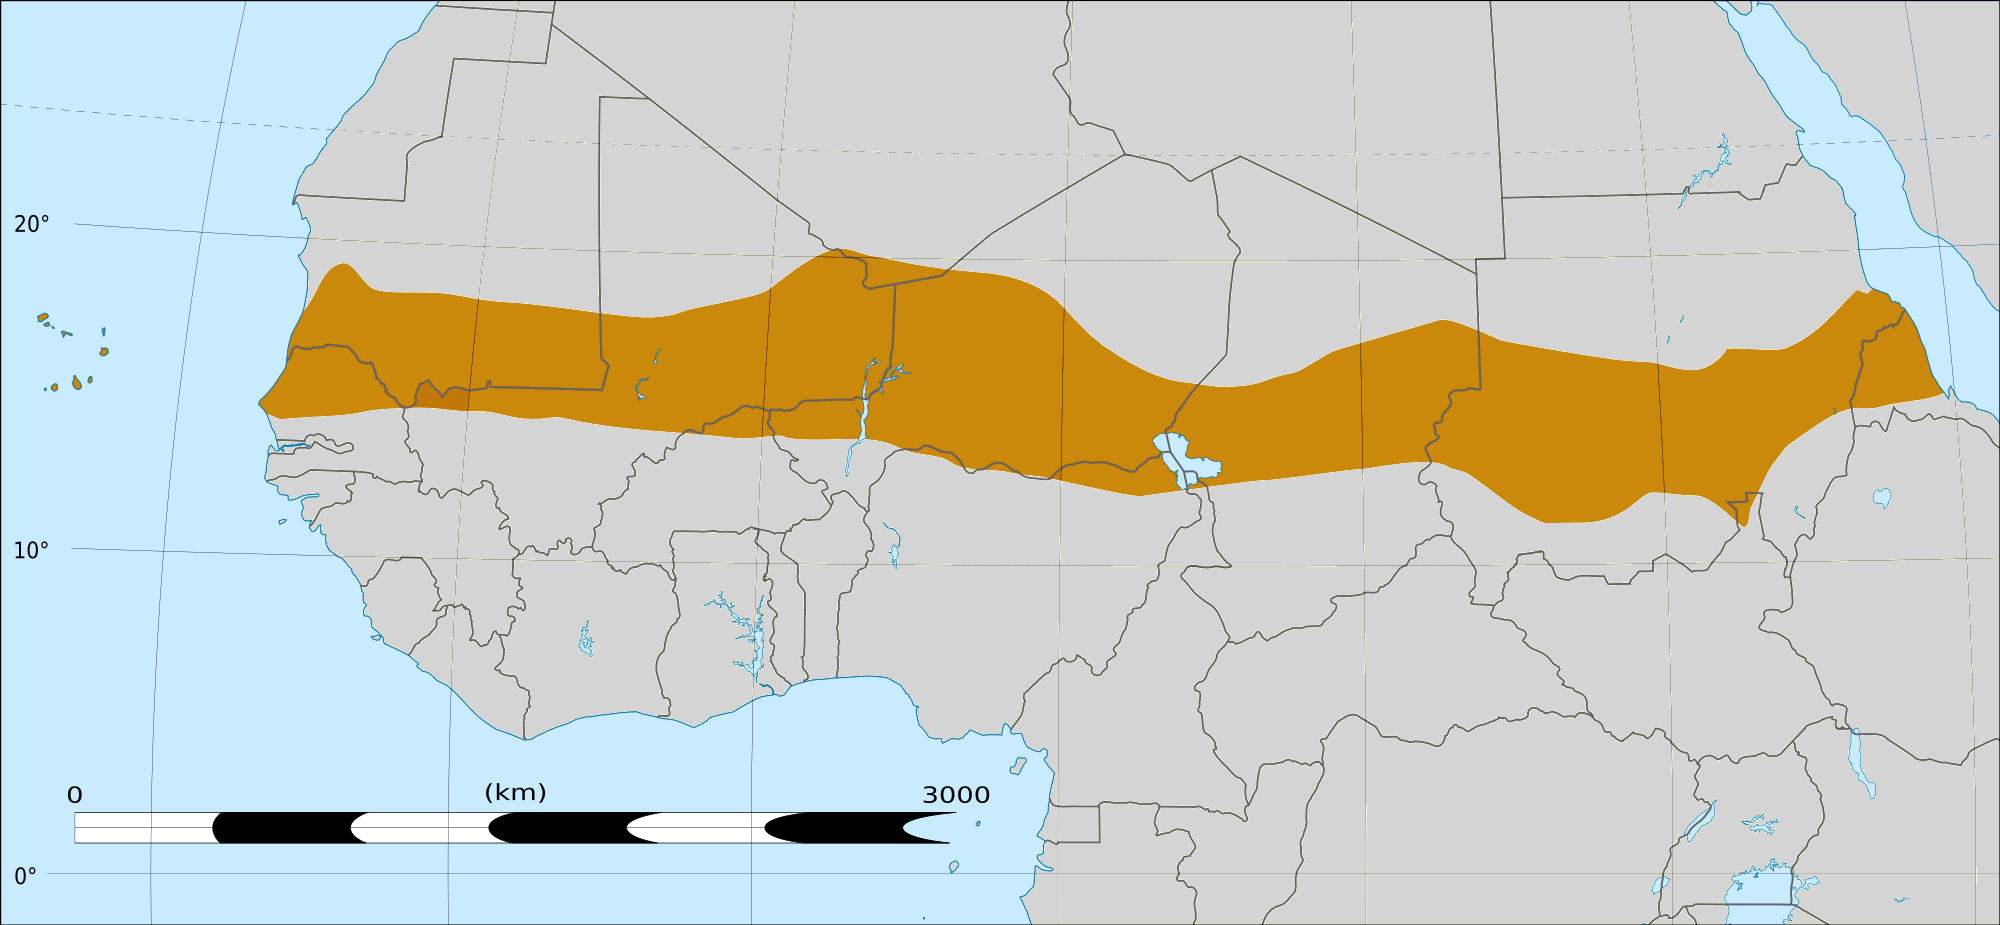 Sahel On Map File:Sahel Map Africa rough.png   Wikipedia Sahel On Map